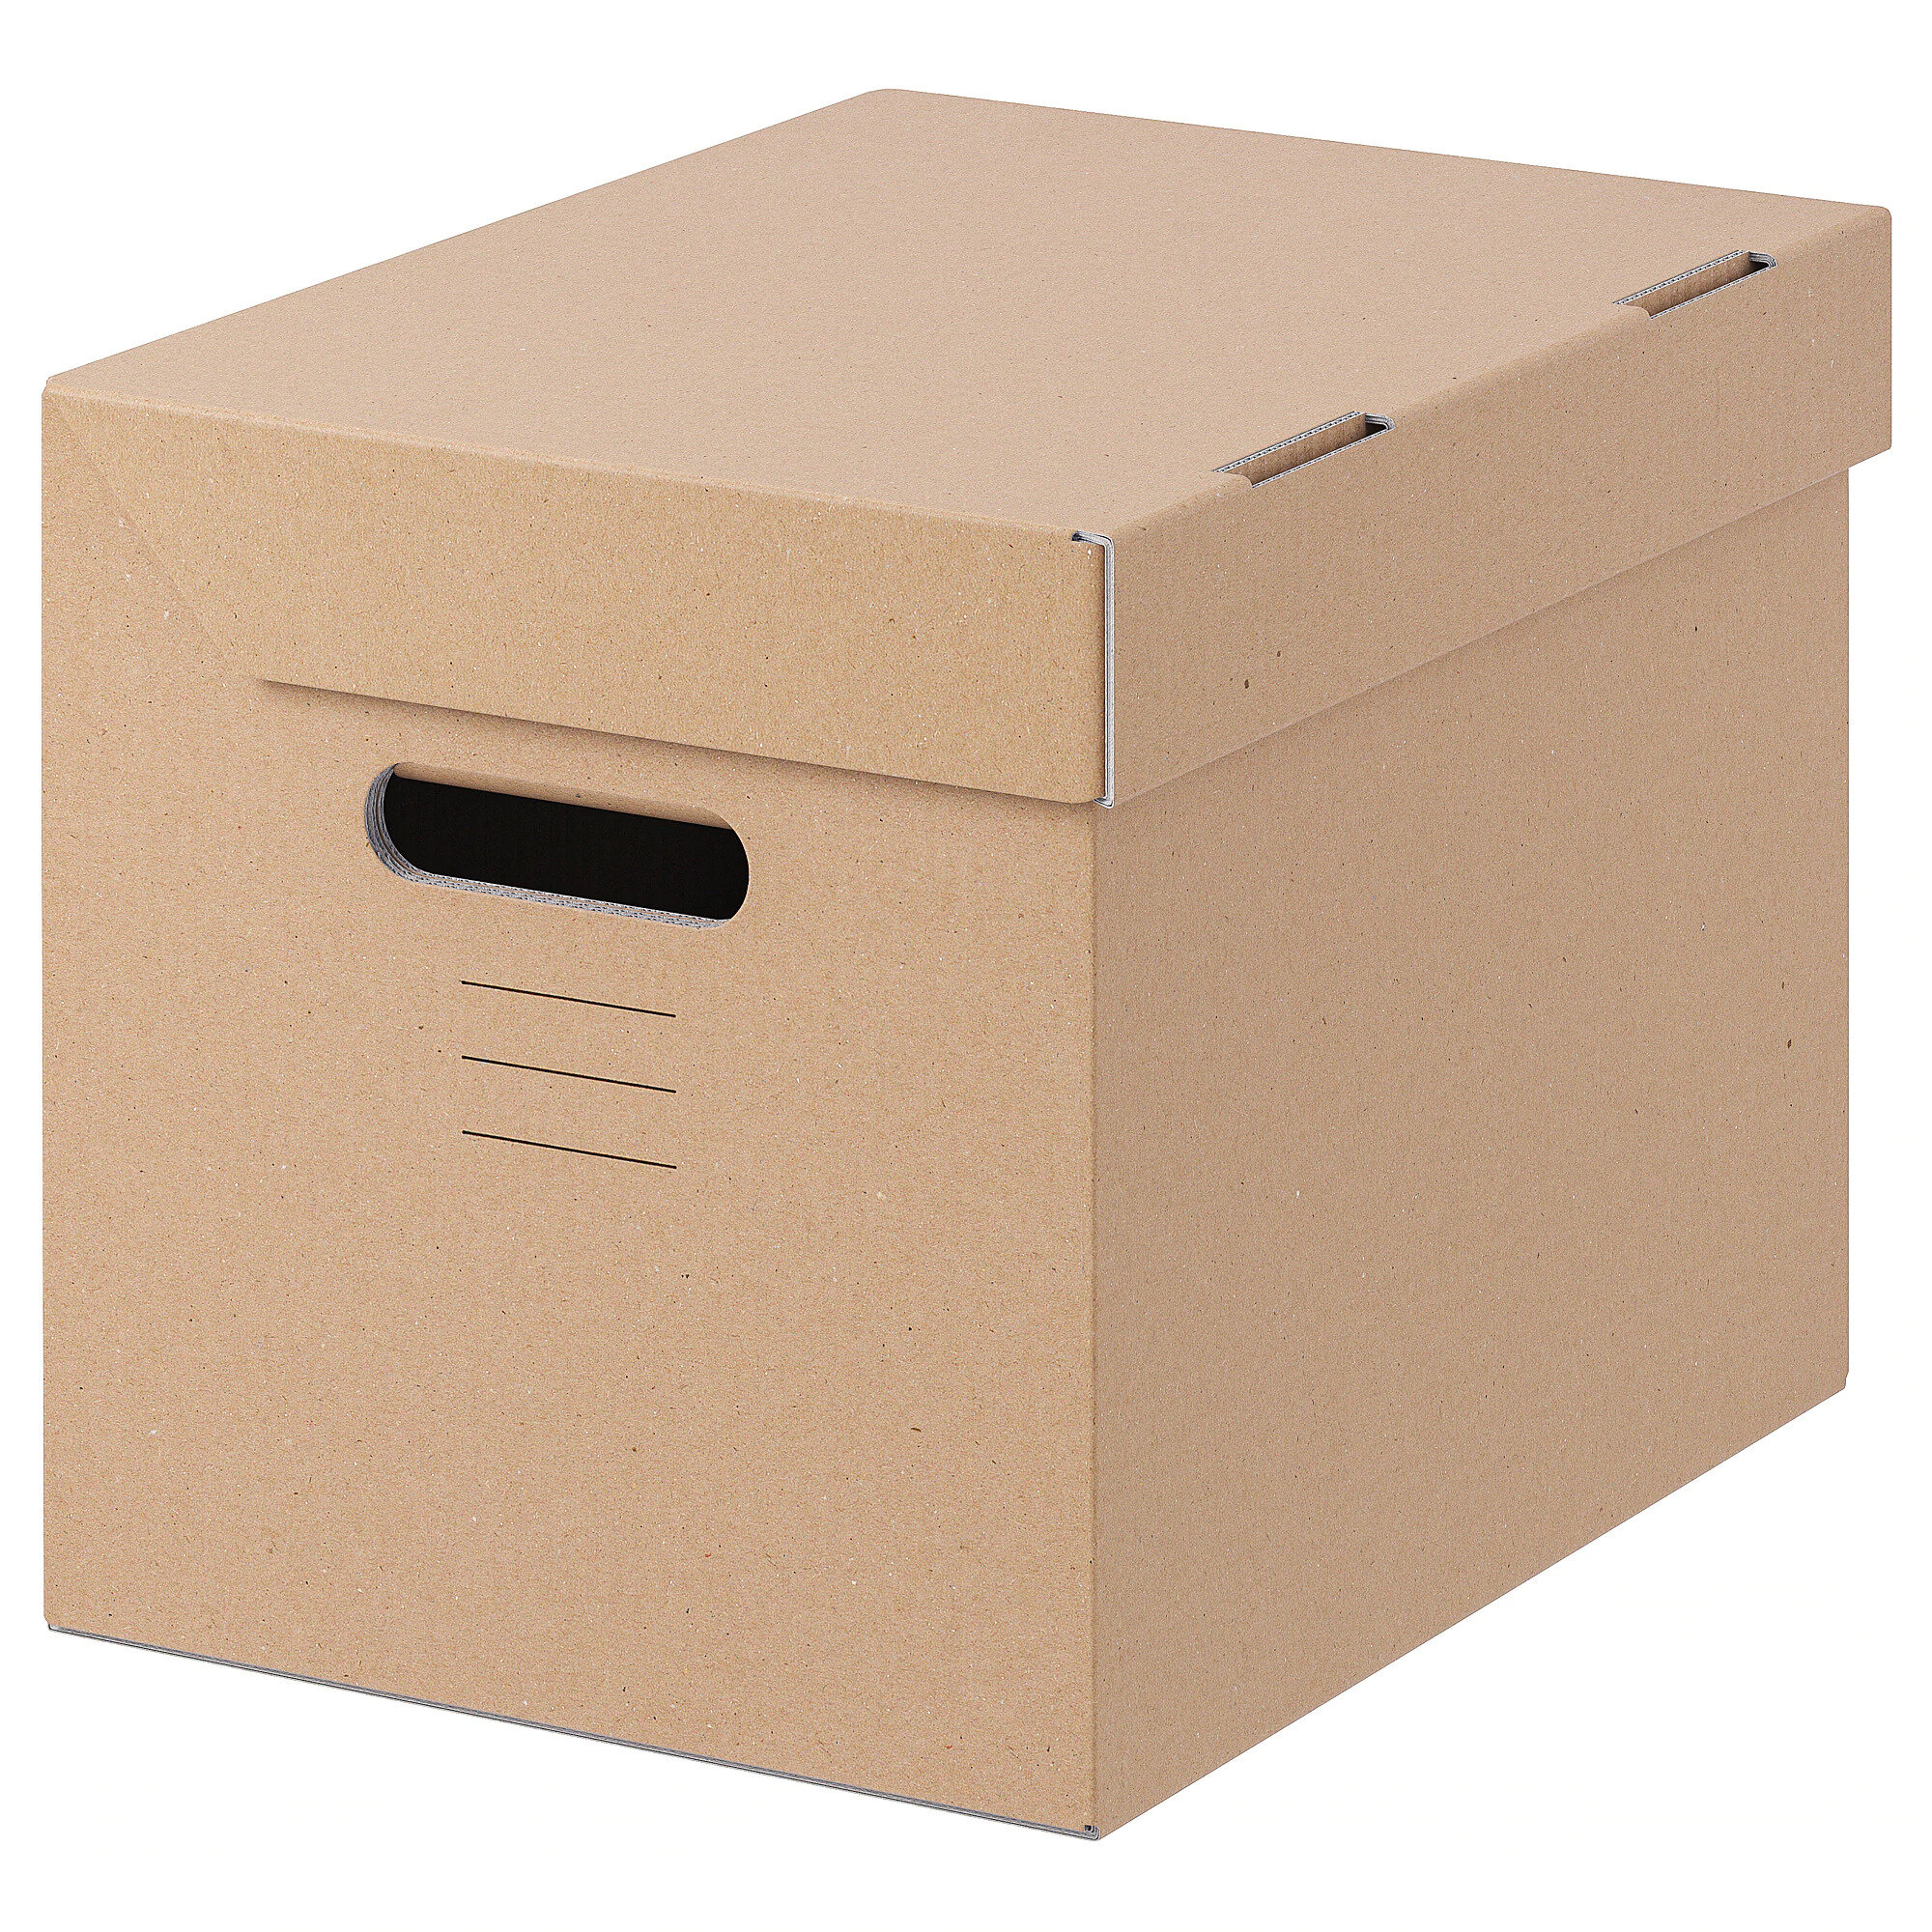 pappis-box-with-lid-brown__0710998_PE727873_S5.jpg